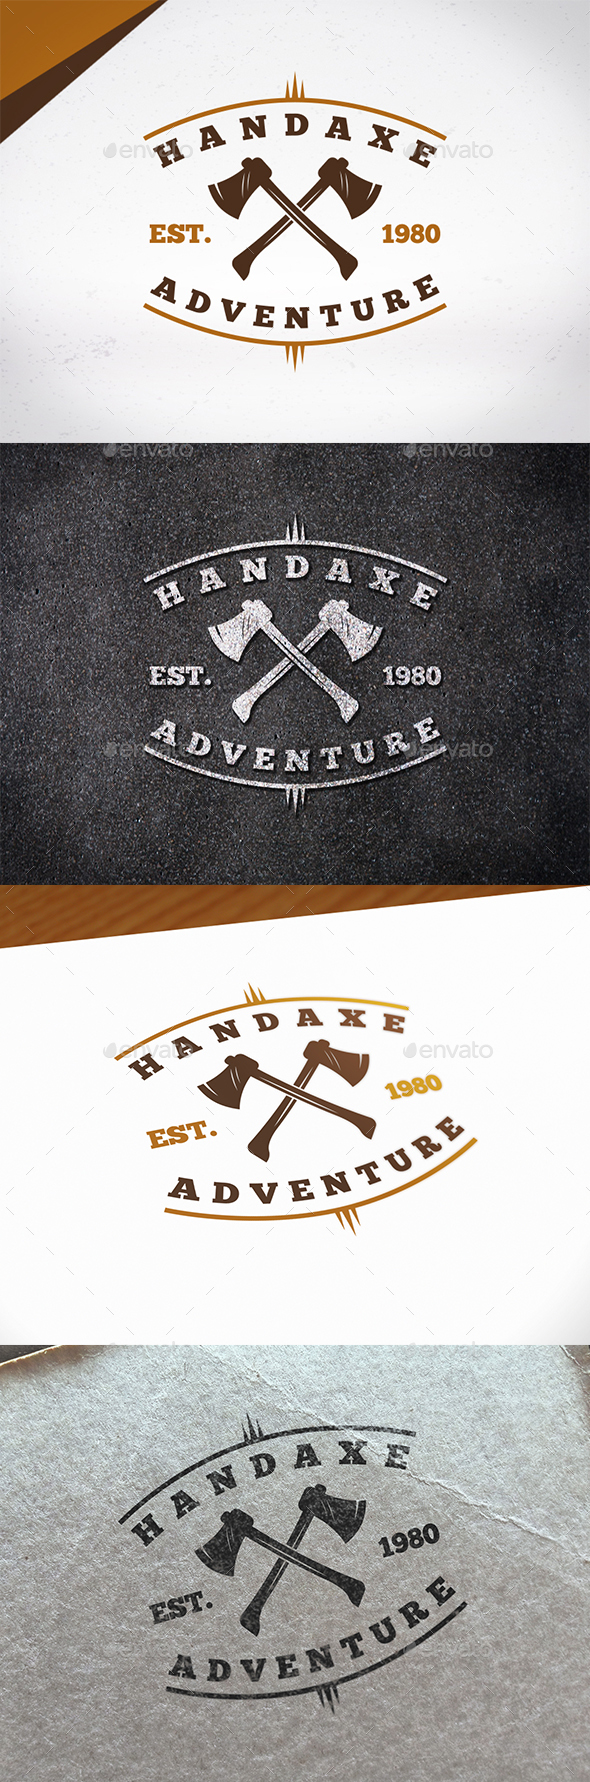 Hand Axe Logo Template - Crests Logo Templates